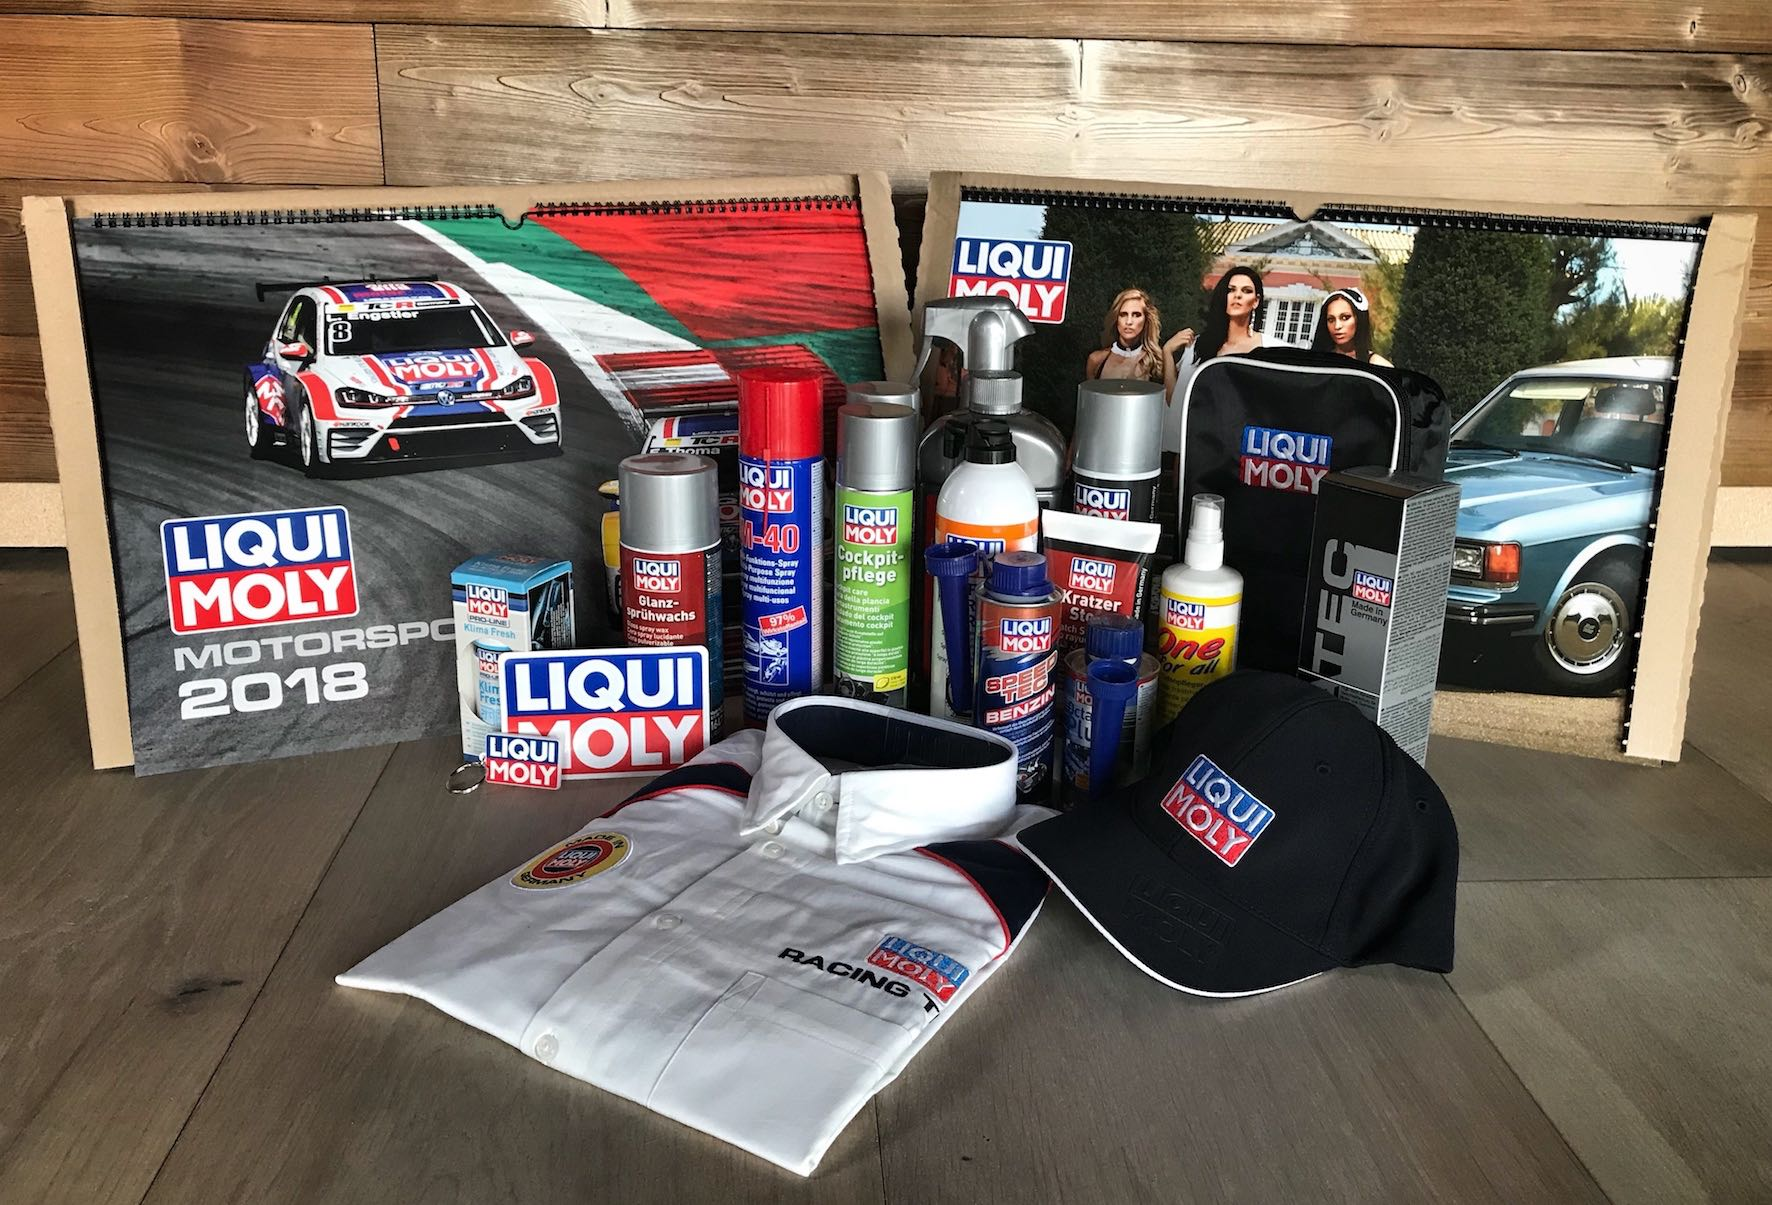 Stand a chance of winning this awesome LIQUI MOLY Calendar